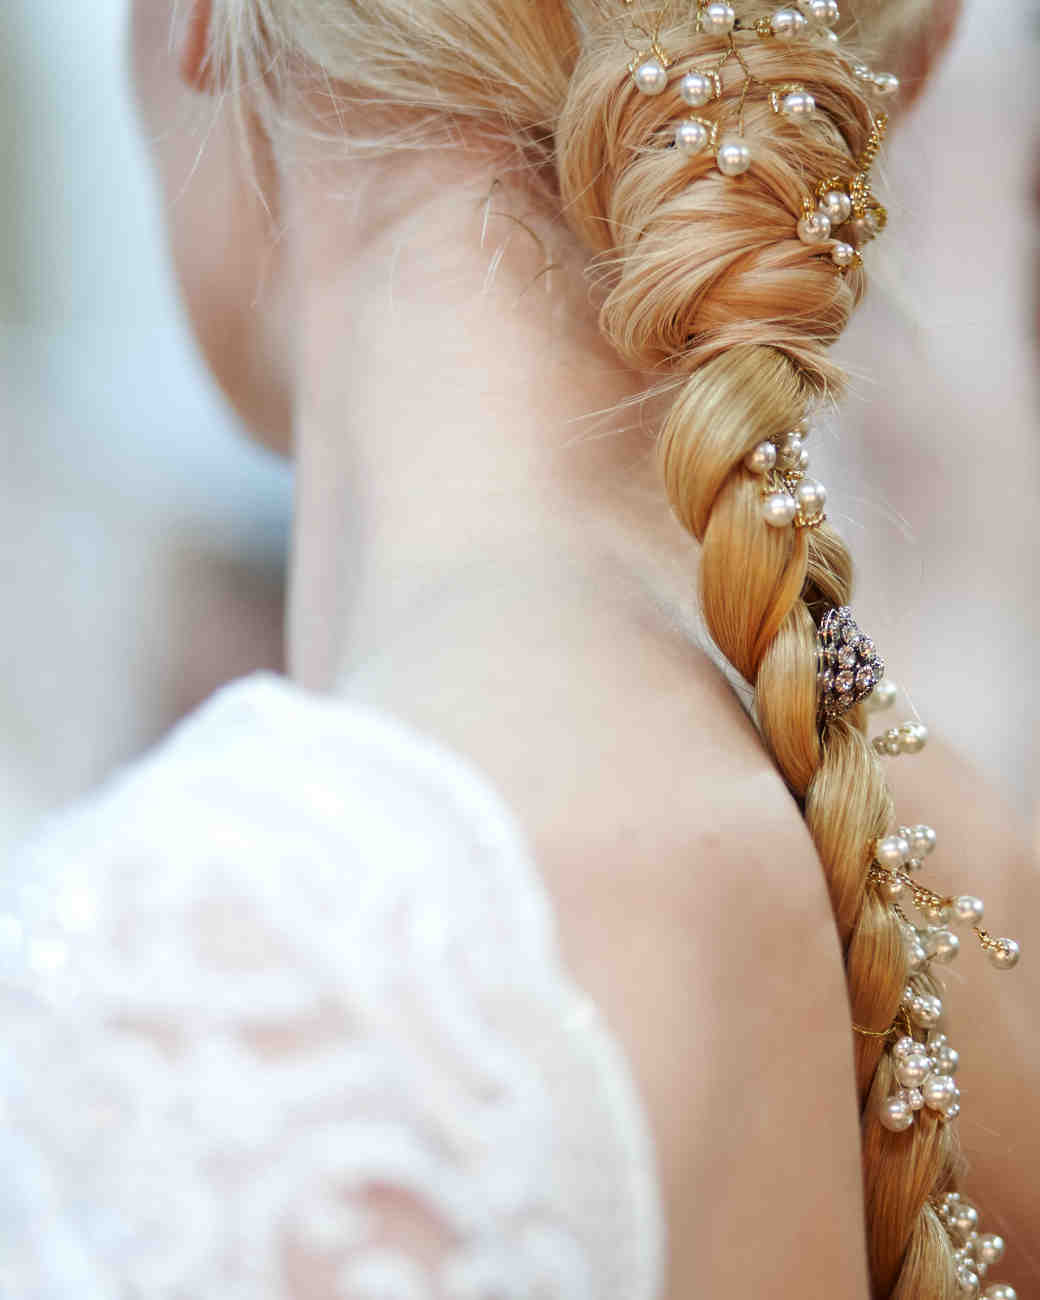 39 Simple Wedding Hairstyles That Prove Less Is More | Martha ...